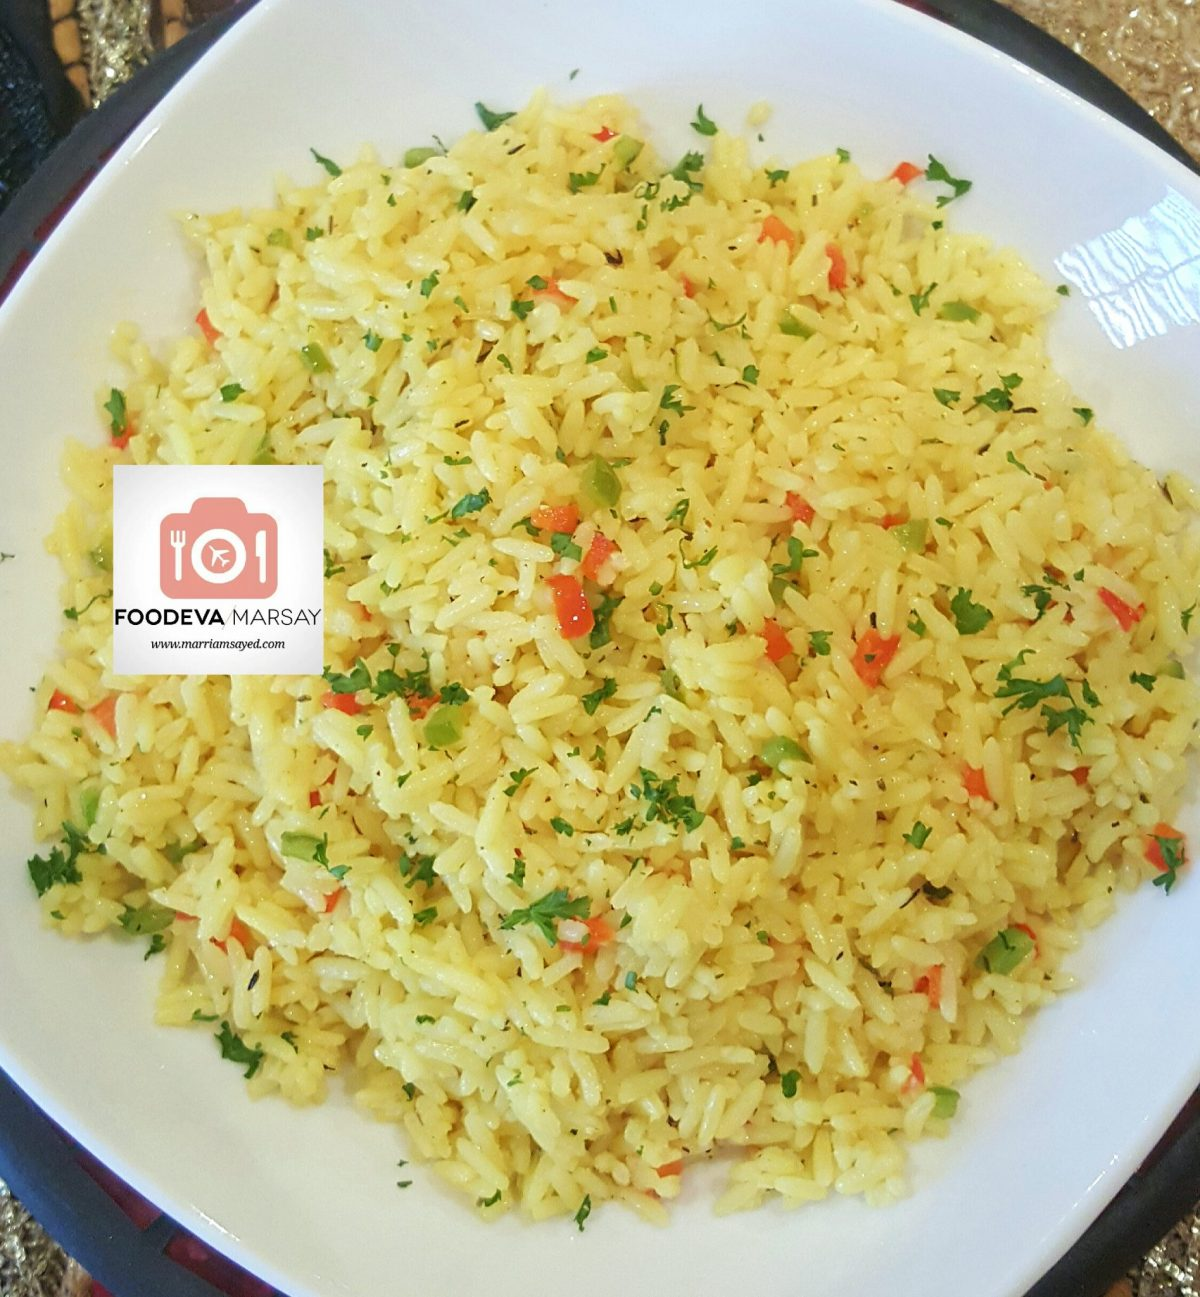 savoury-rice-with-peppers4.jpg?fit=1200%2C1297&ssl=1